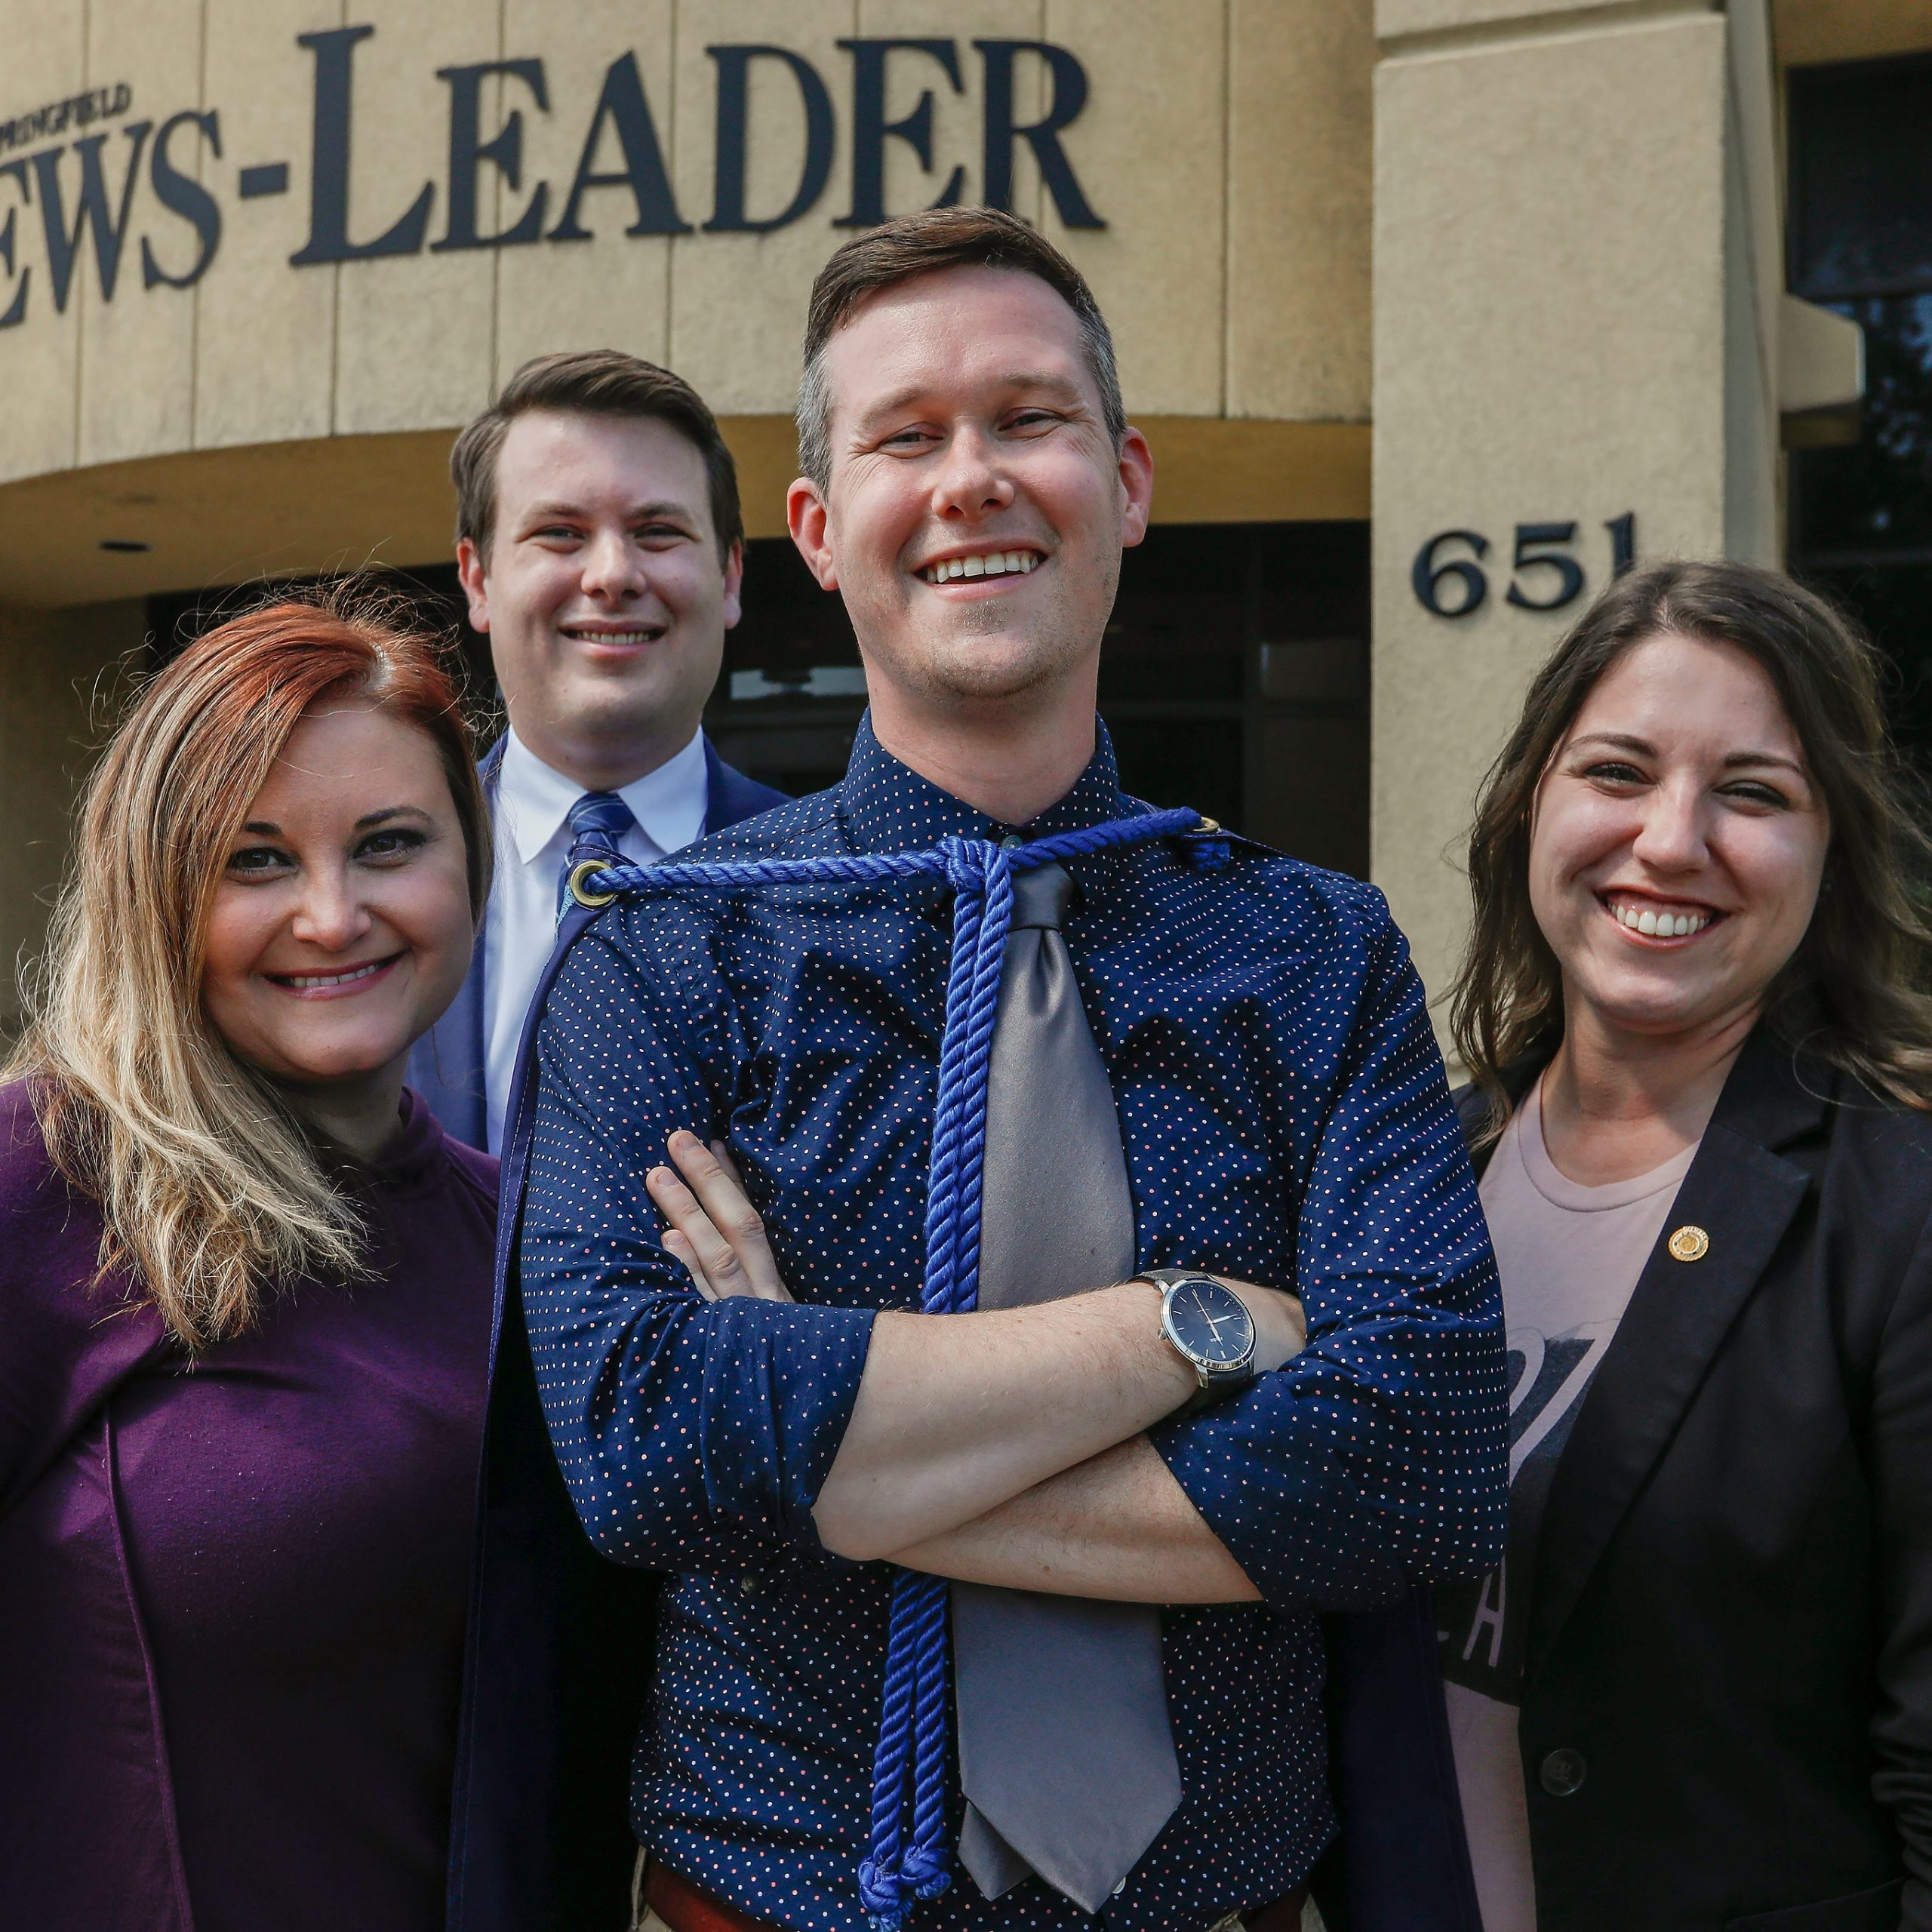 Three former Captain Springfields gathered to pass the cape onto Michael Underlin, center, at the Springfield News-Leader on Tuesday, Sept. 3, 2019. From left are Janelle Reed, Matthew Simpson, Underlin and Crystal Quade.